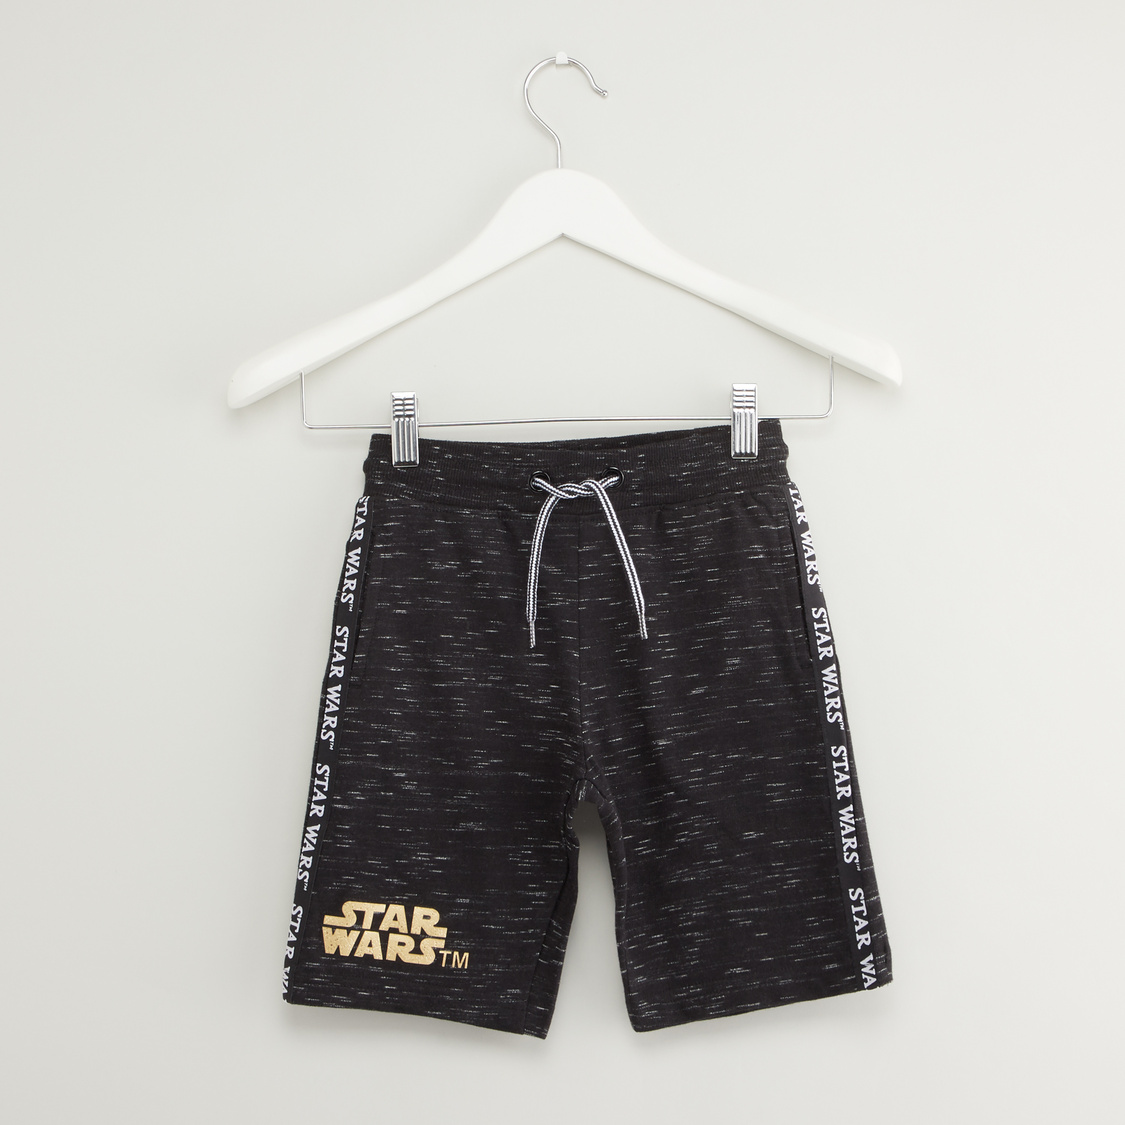 Star Wars Print T-shirt and Shorts Set